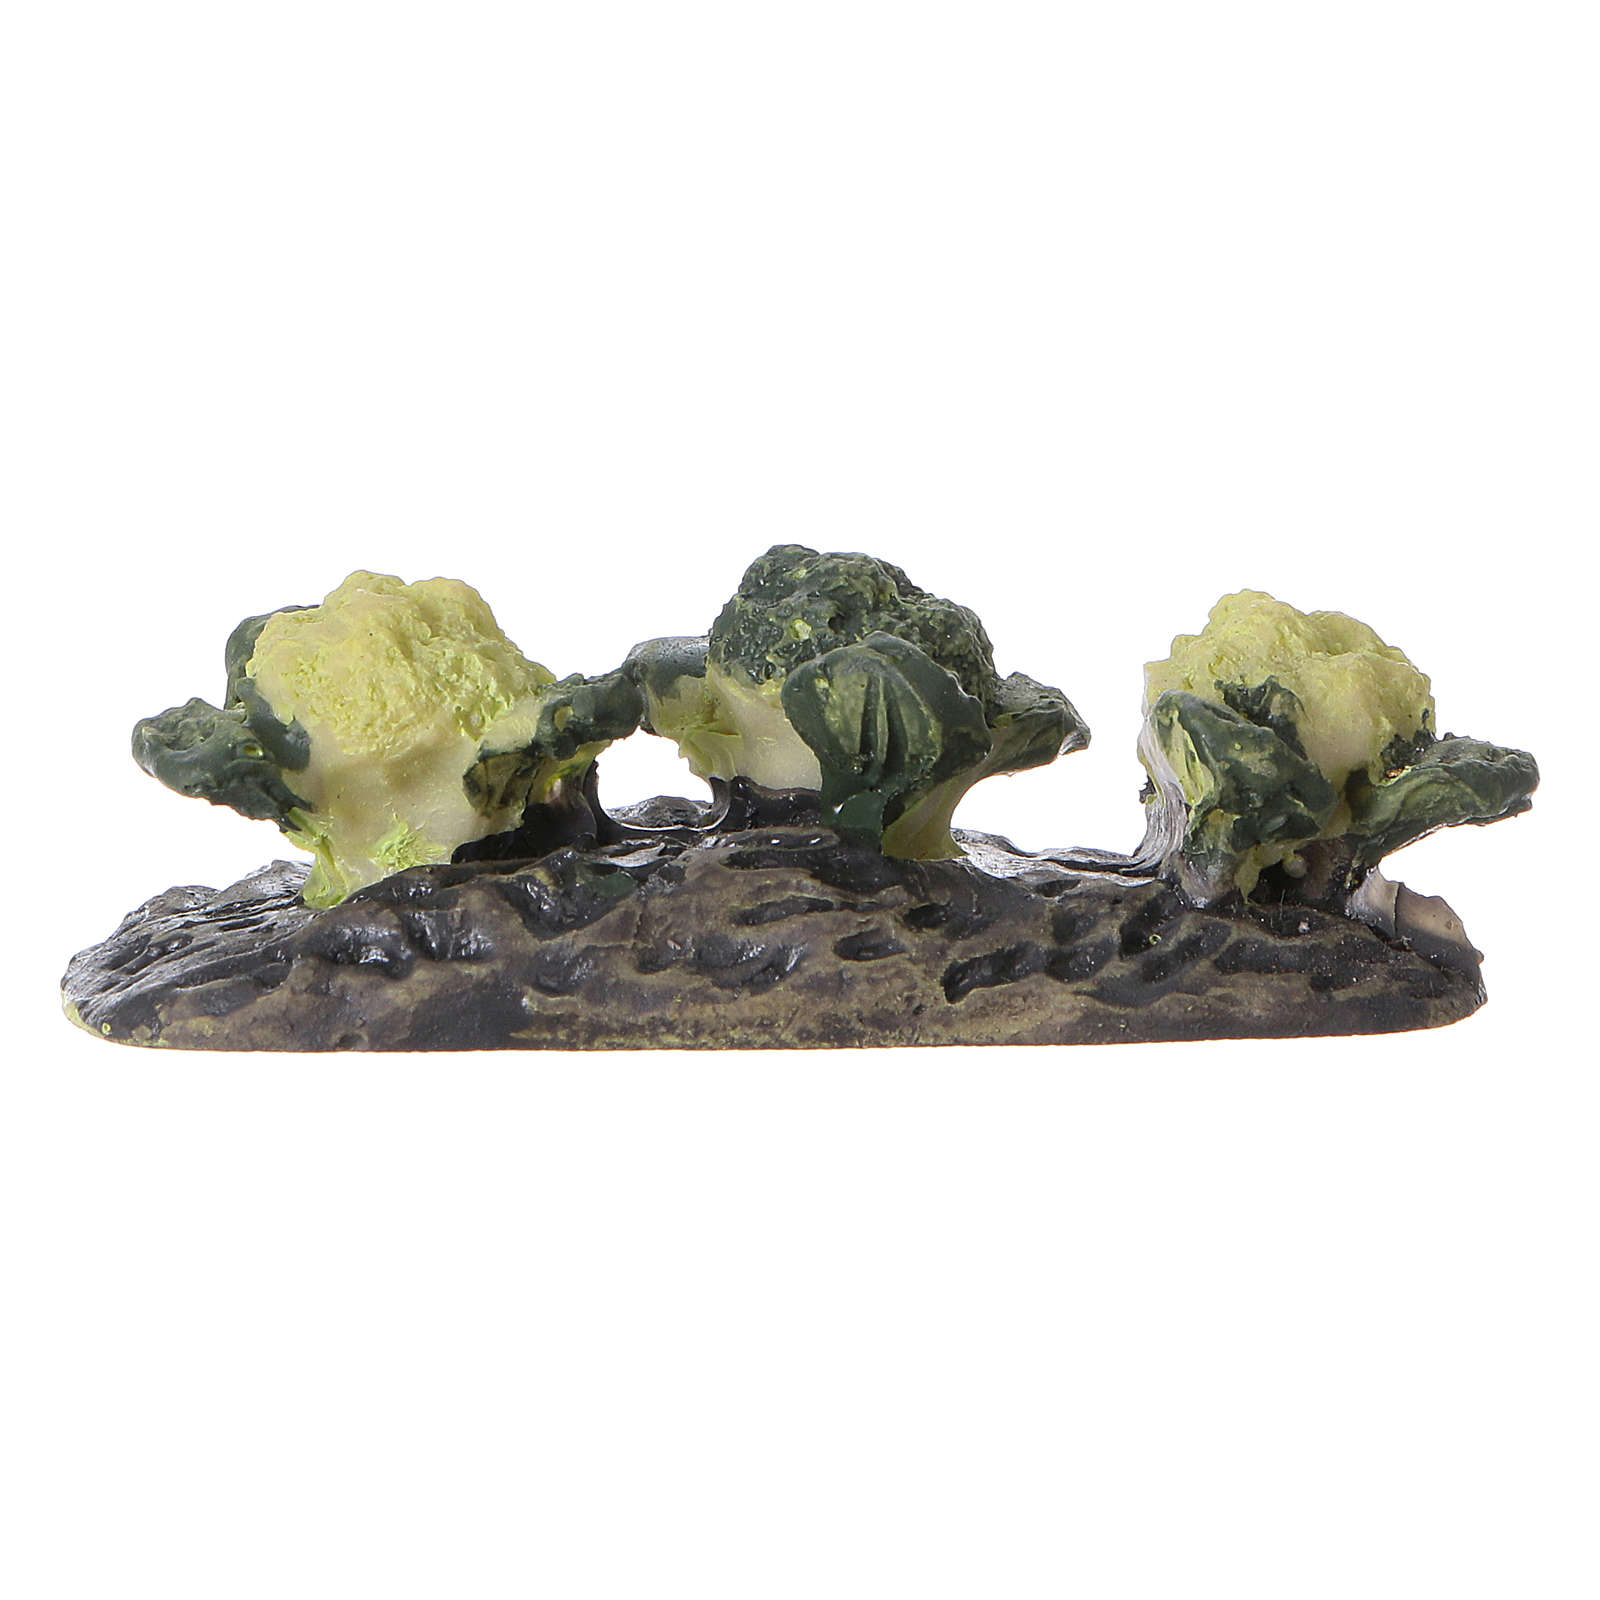 Row of cabbages in resin 5x5x5 cm 4